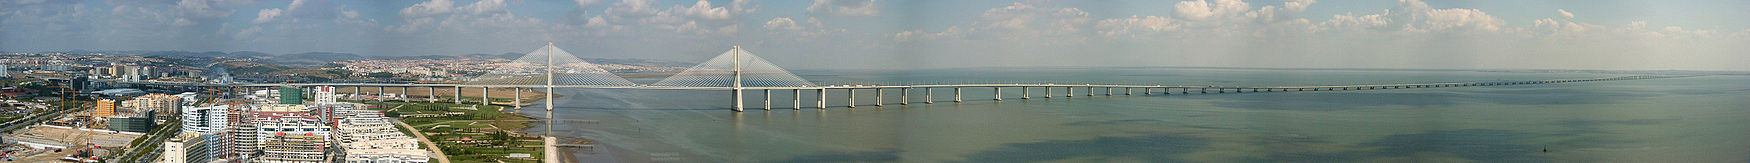 Vasco da Gama bridge panorama.jpg